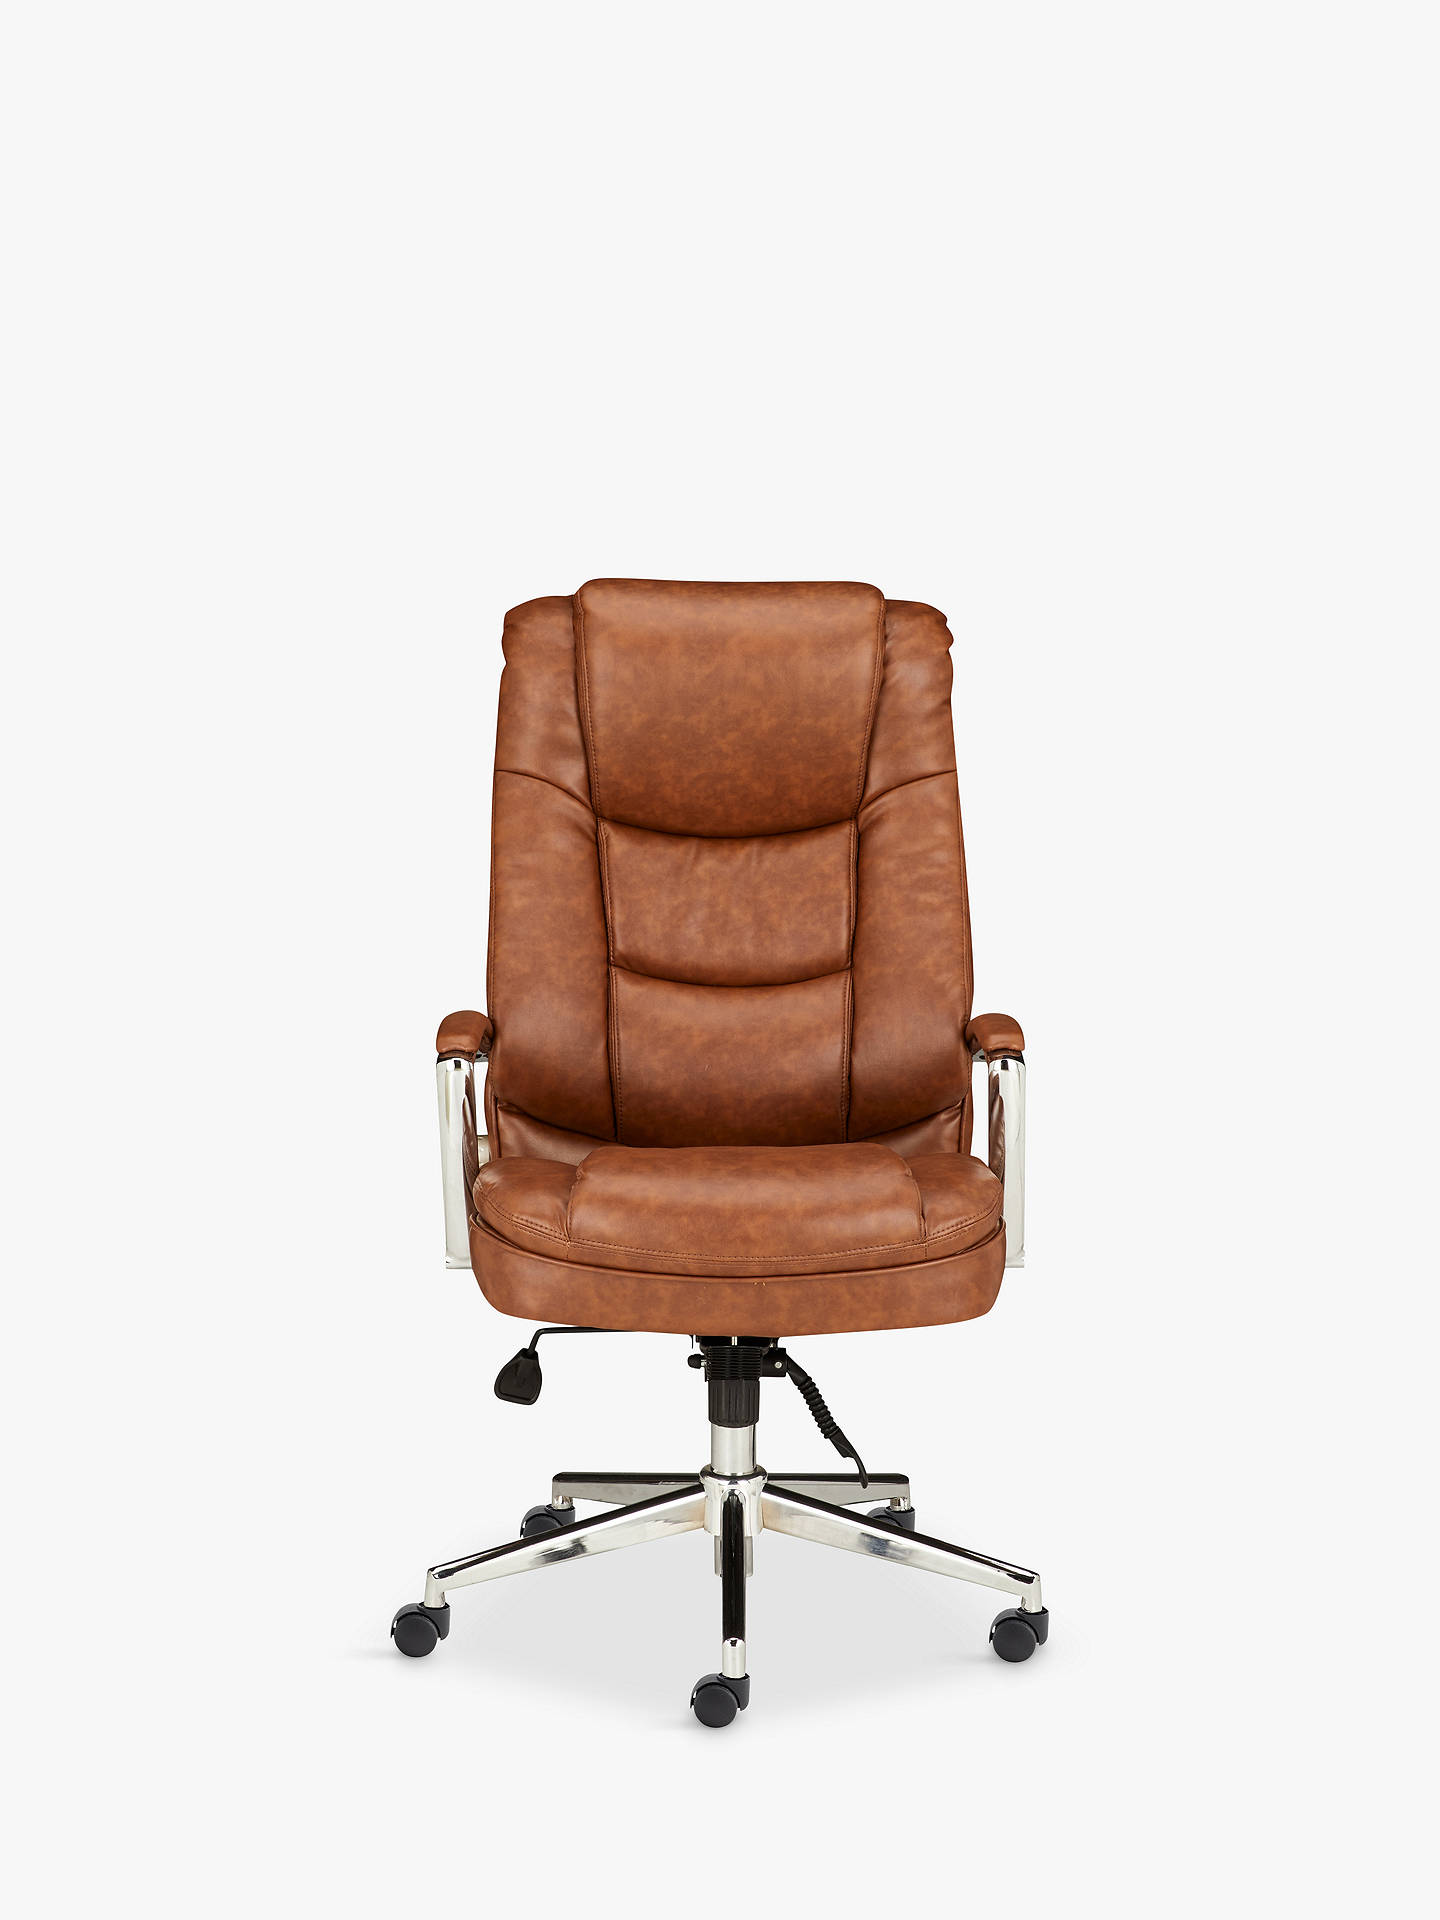 Wondrous John Lewis Partners Abraham Office Chair Tan Interior Design Ideas Inesswwsoteloinfo